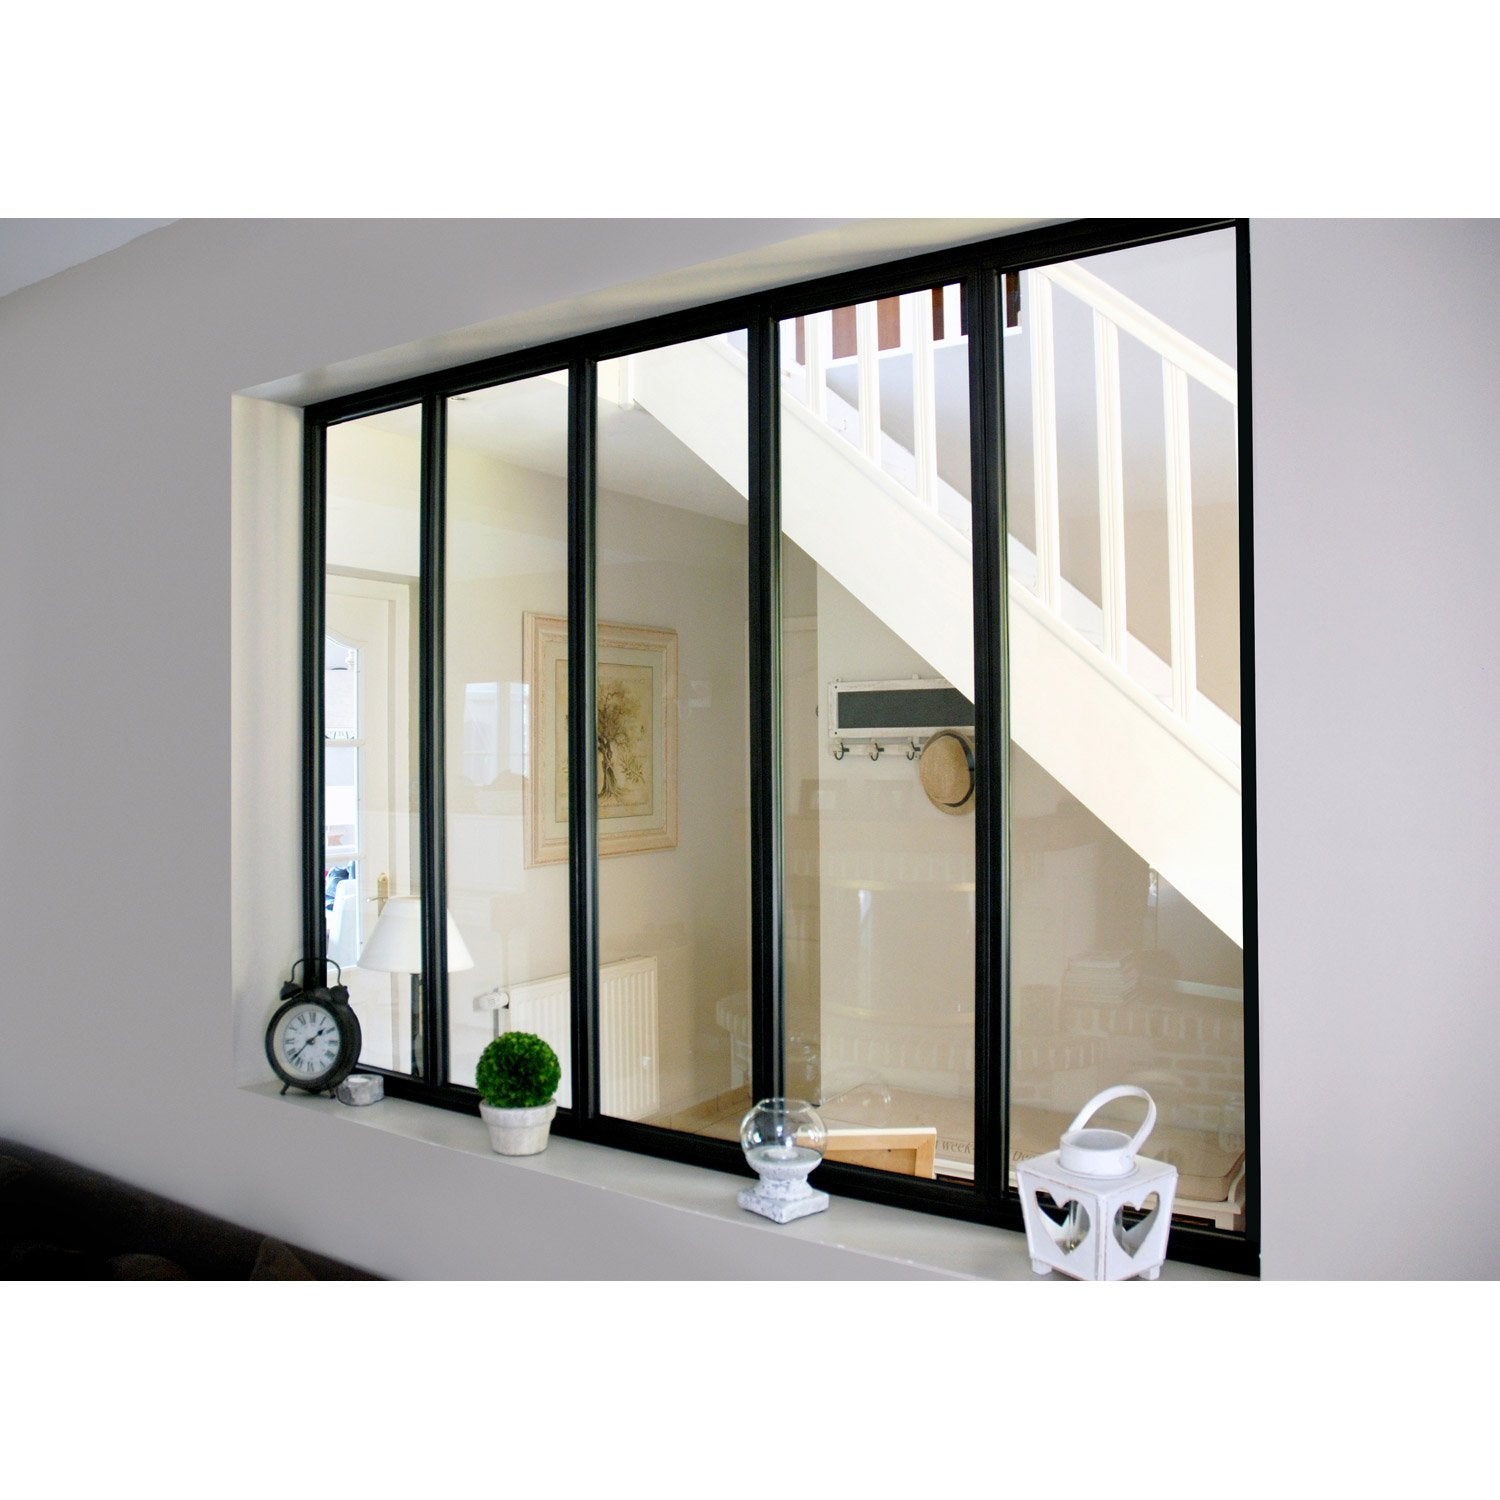 Verri re d 39 int rieur atelier en kit aluminium noir 5 for Prix porte interieur leroy merlin